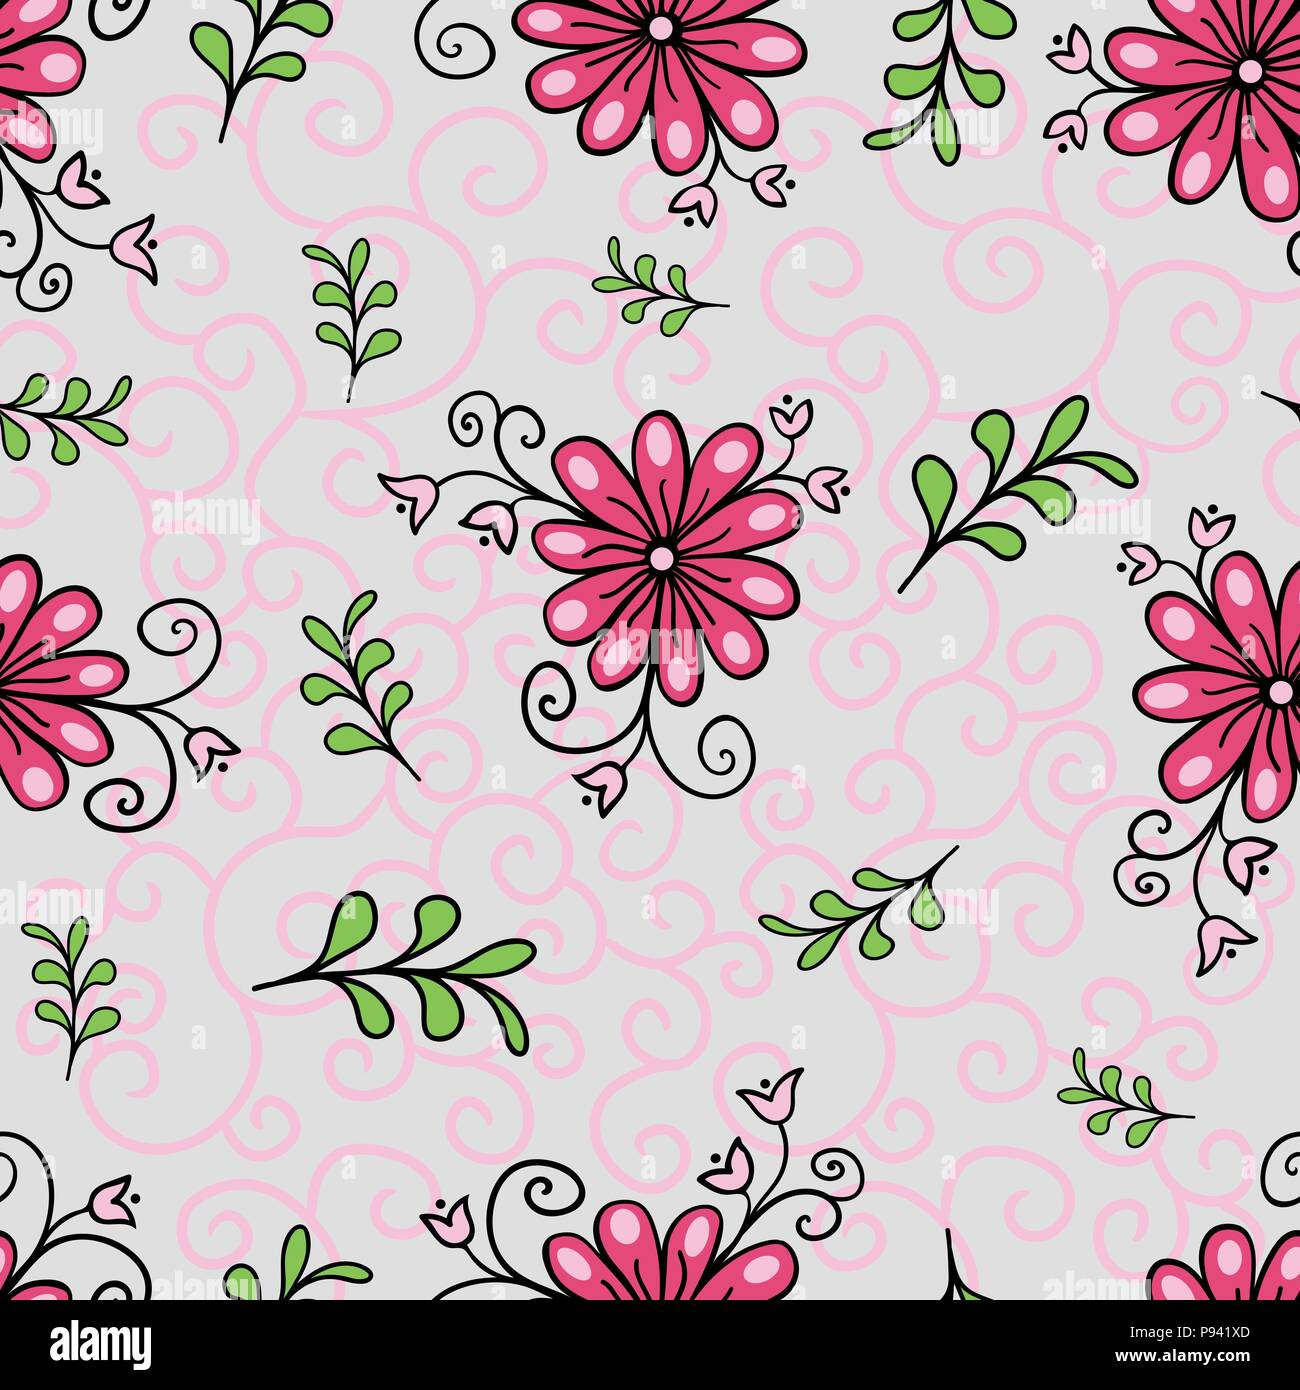 Modern Floral Background Amazing Seamless Floral Stock Vector